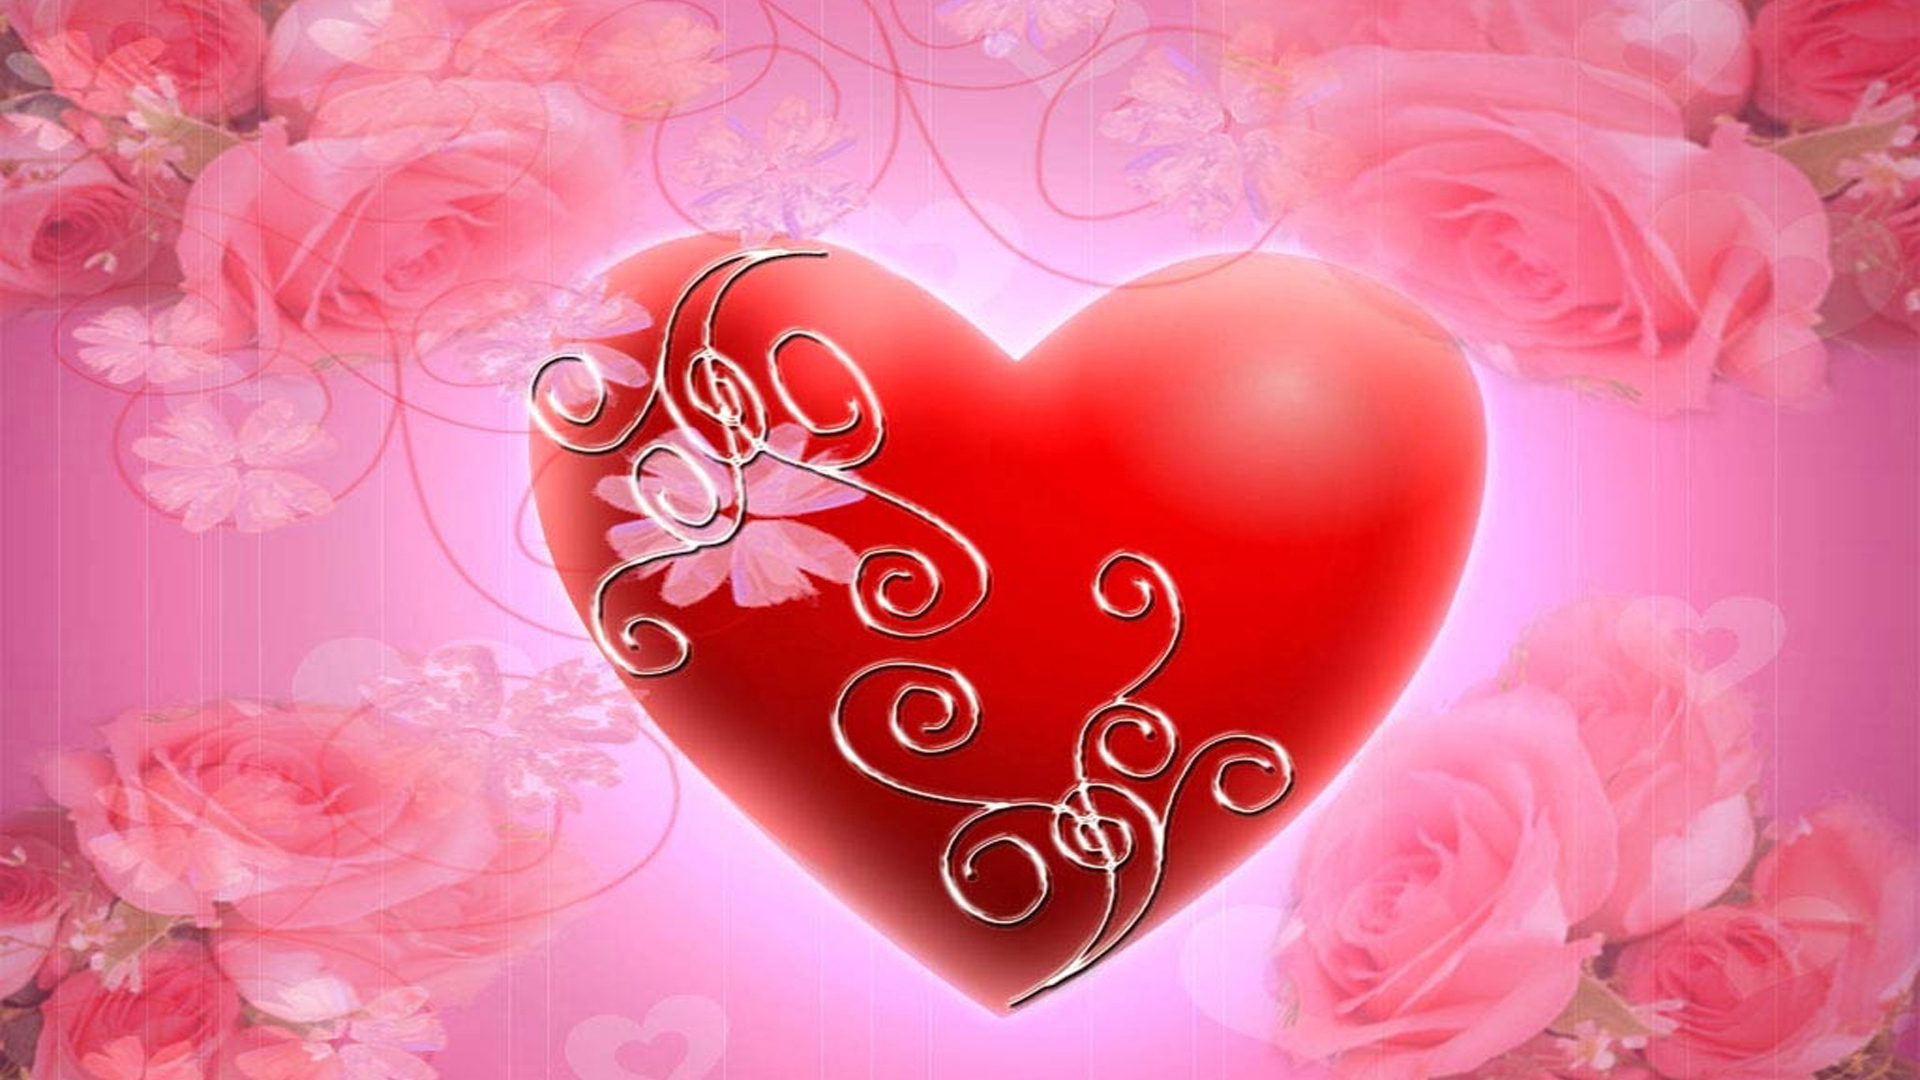 Red Heart Pink Roses Hd Wallpaper Wallpapers13 Com